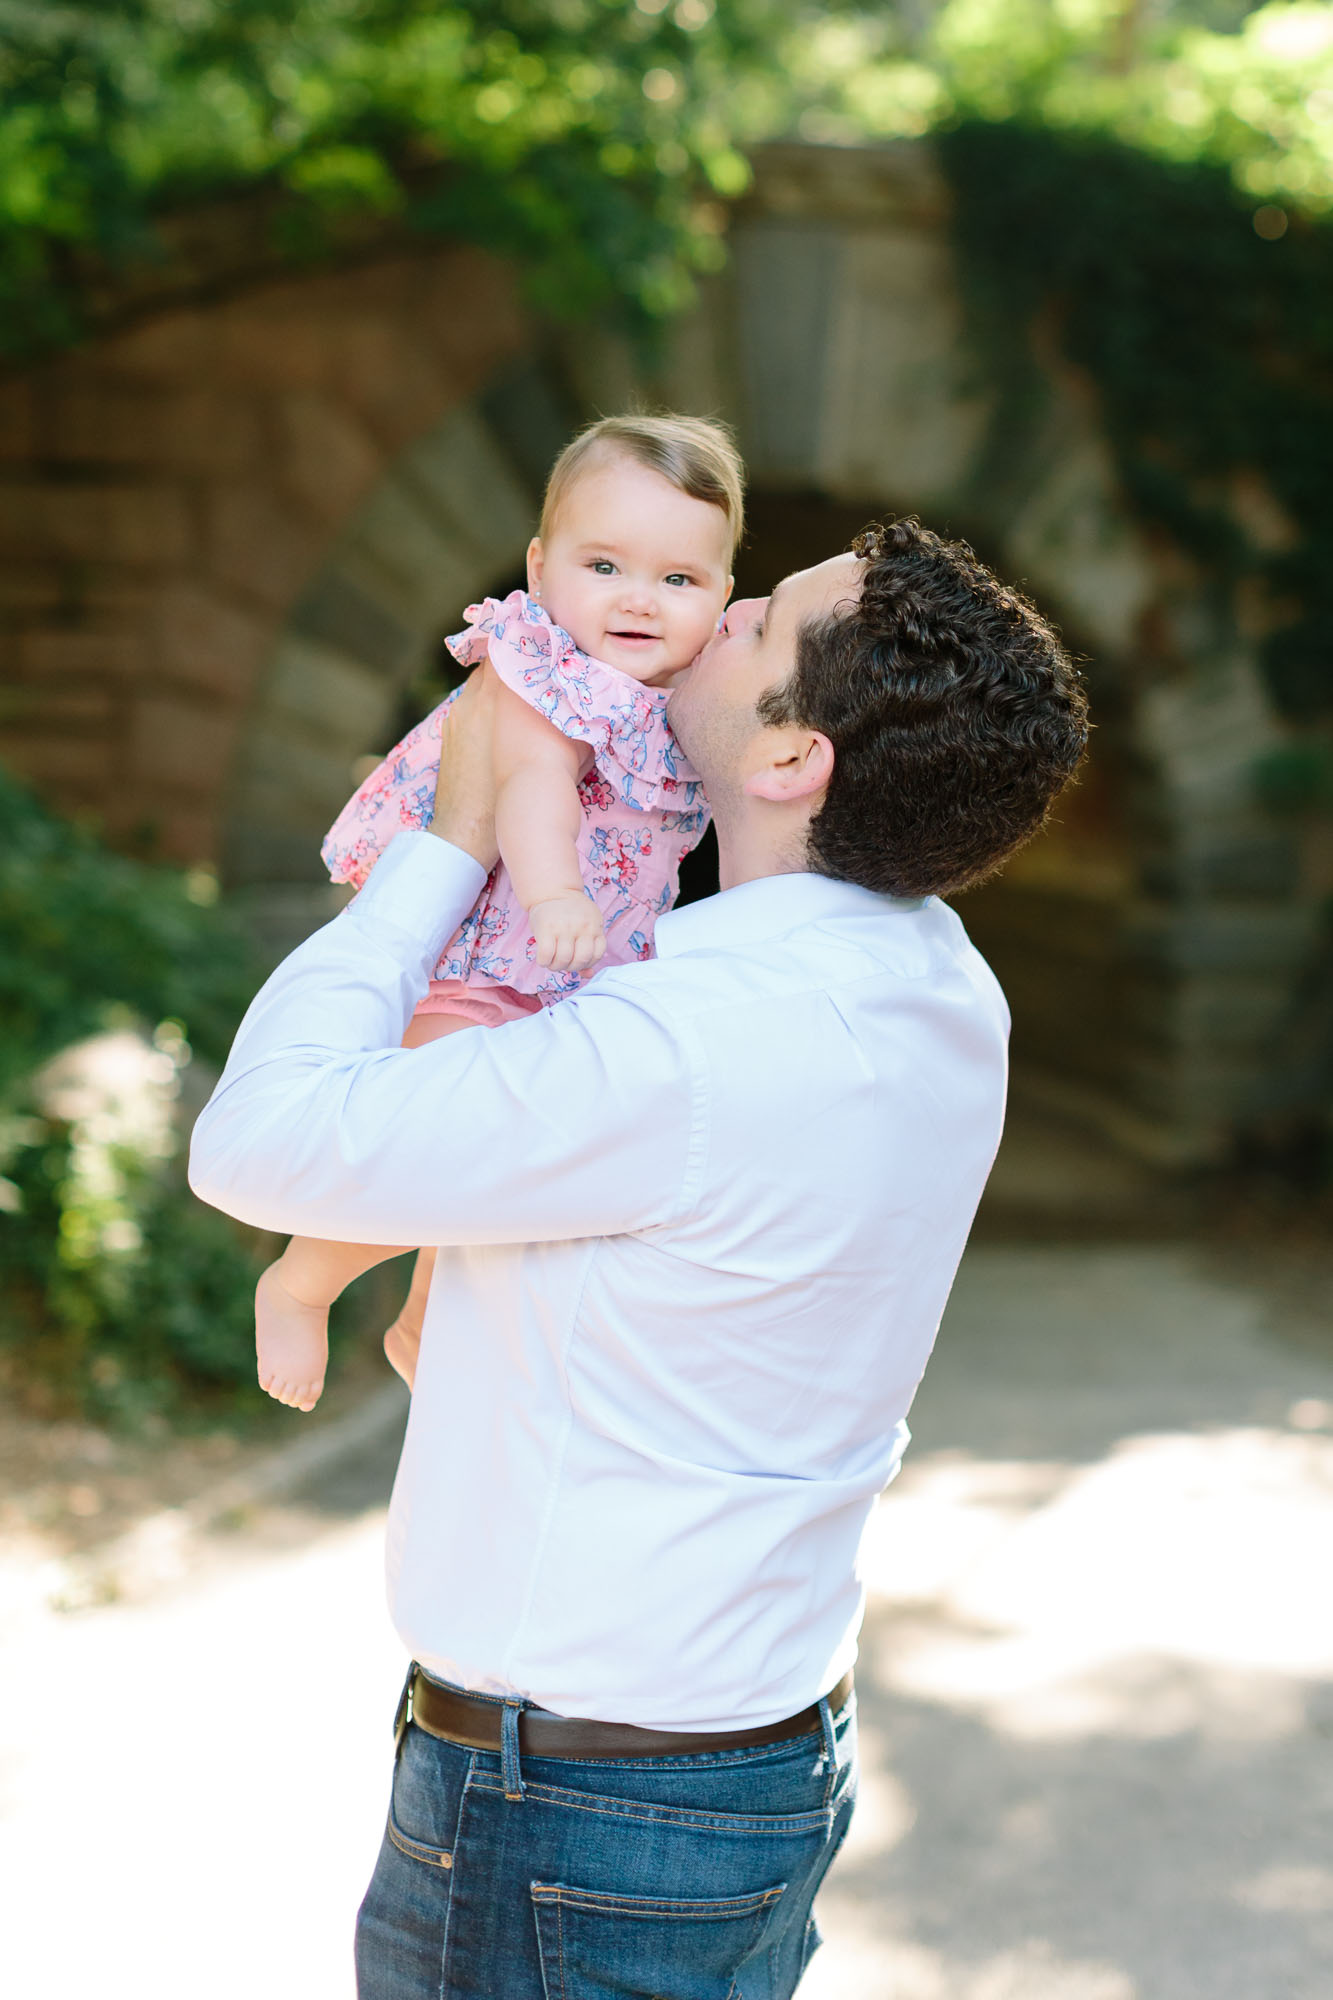 Morillos family in Central Park pictured by top NYC family photographer, Jacqueline Clair